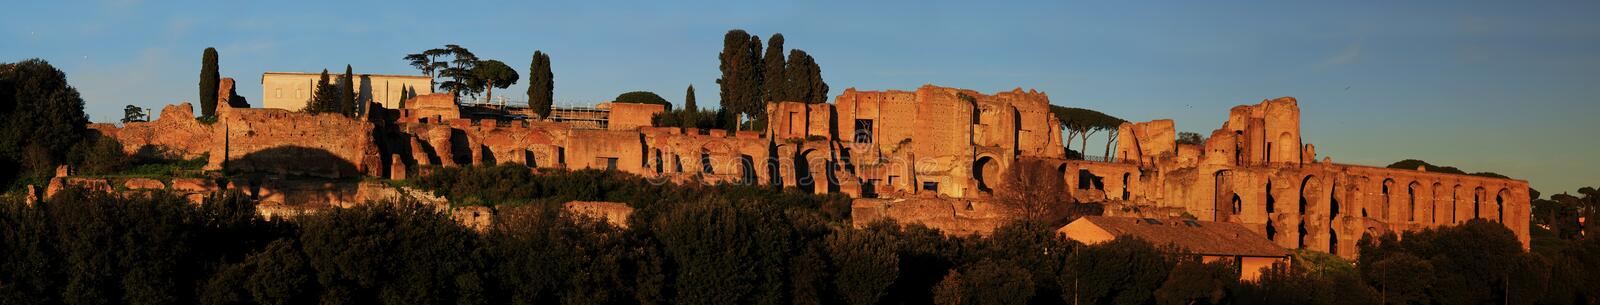 Ruins of Palatine hill palace in Rome. Italy panorama view royalty free stock photo